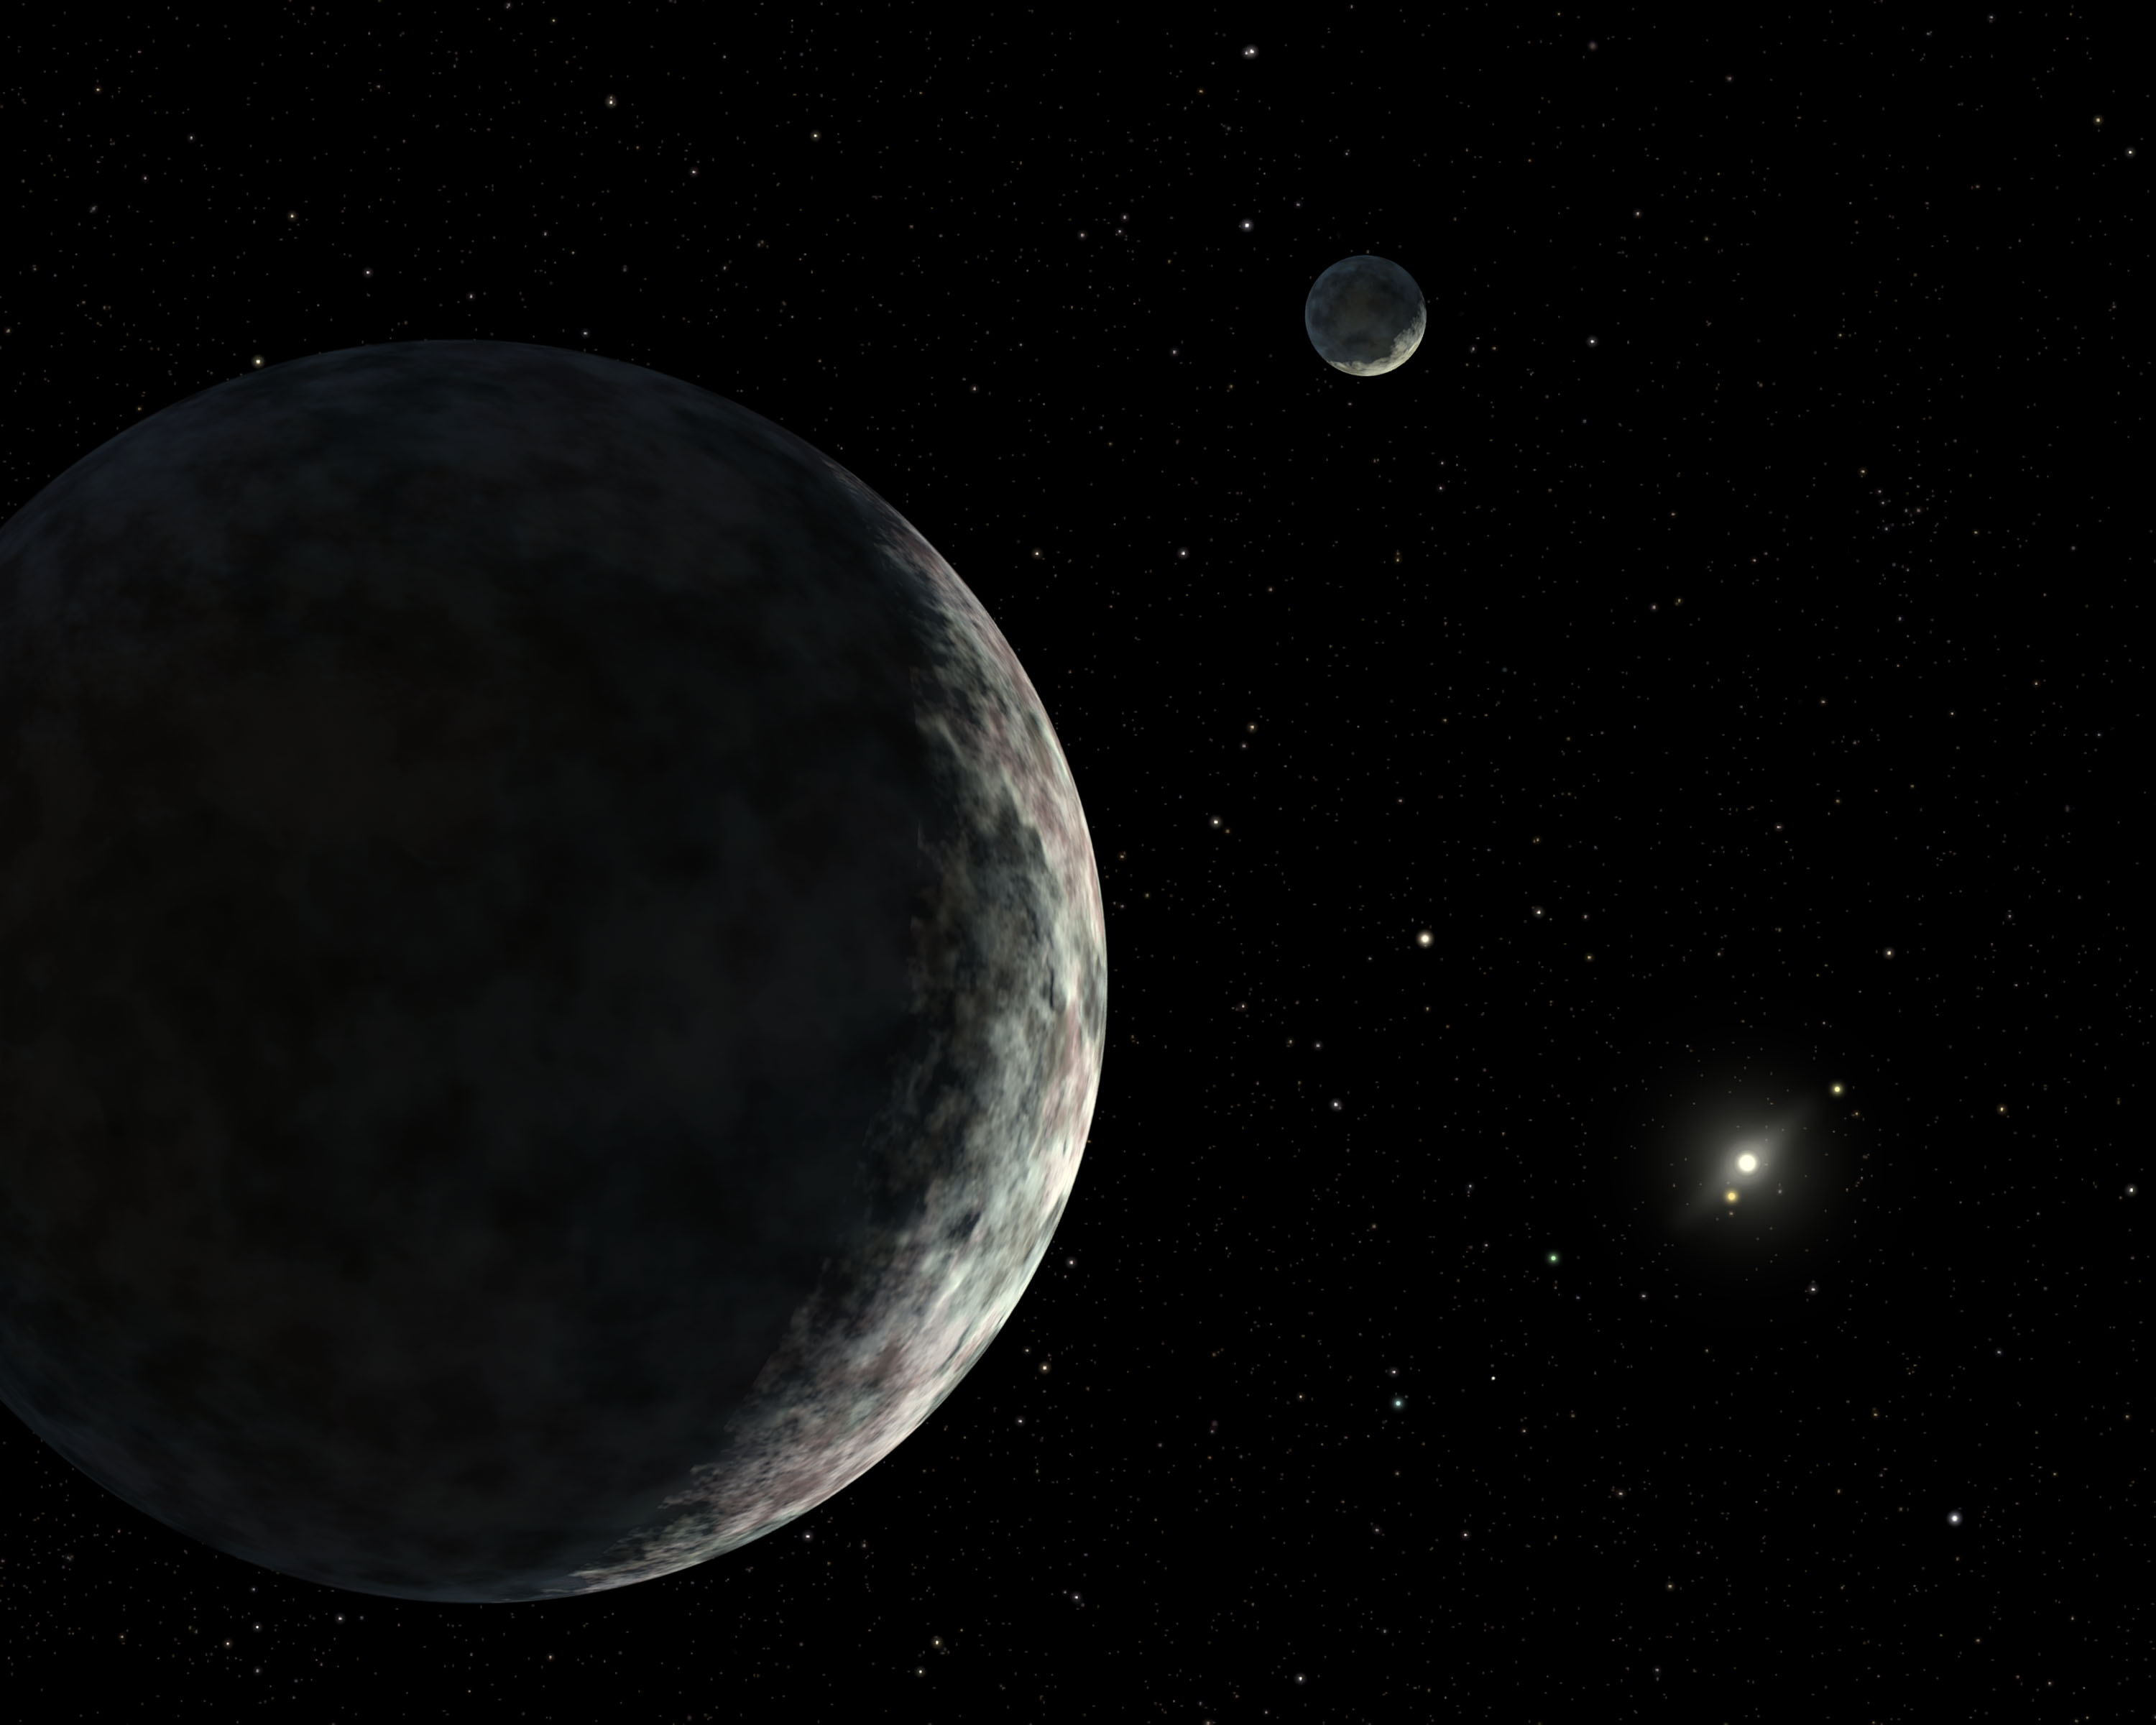 Eris: The Dwarf Planet That is Pluto's Twin